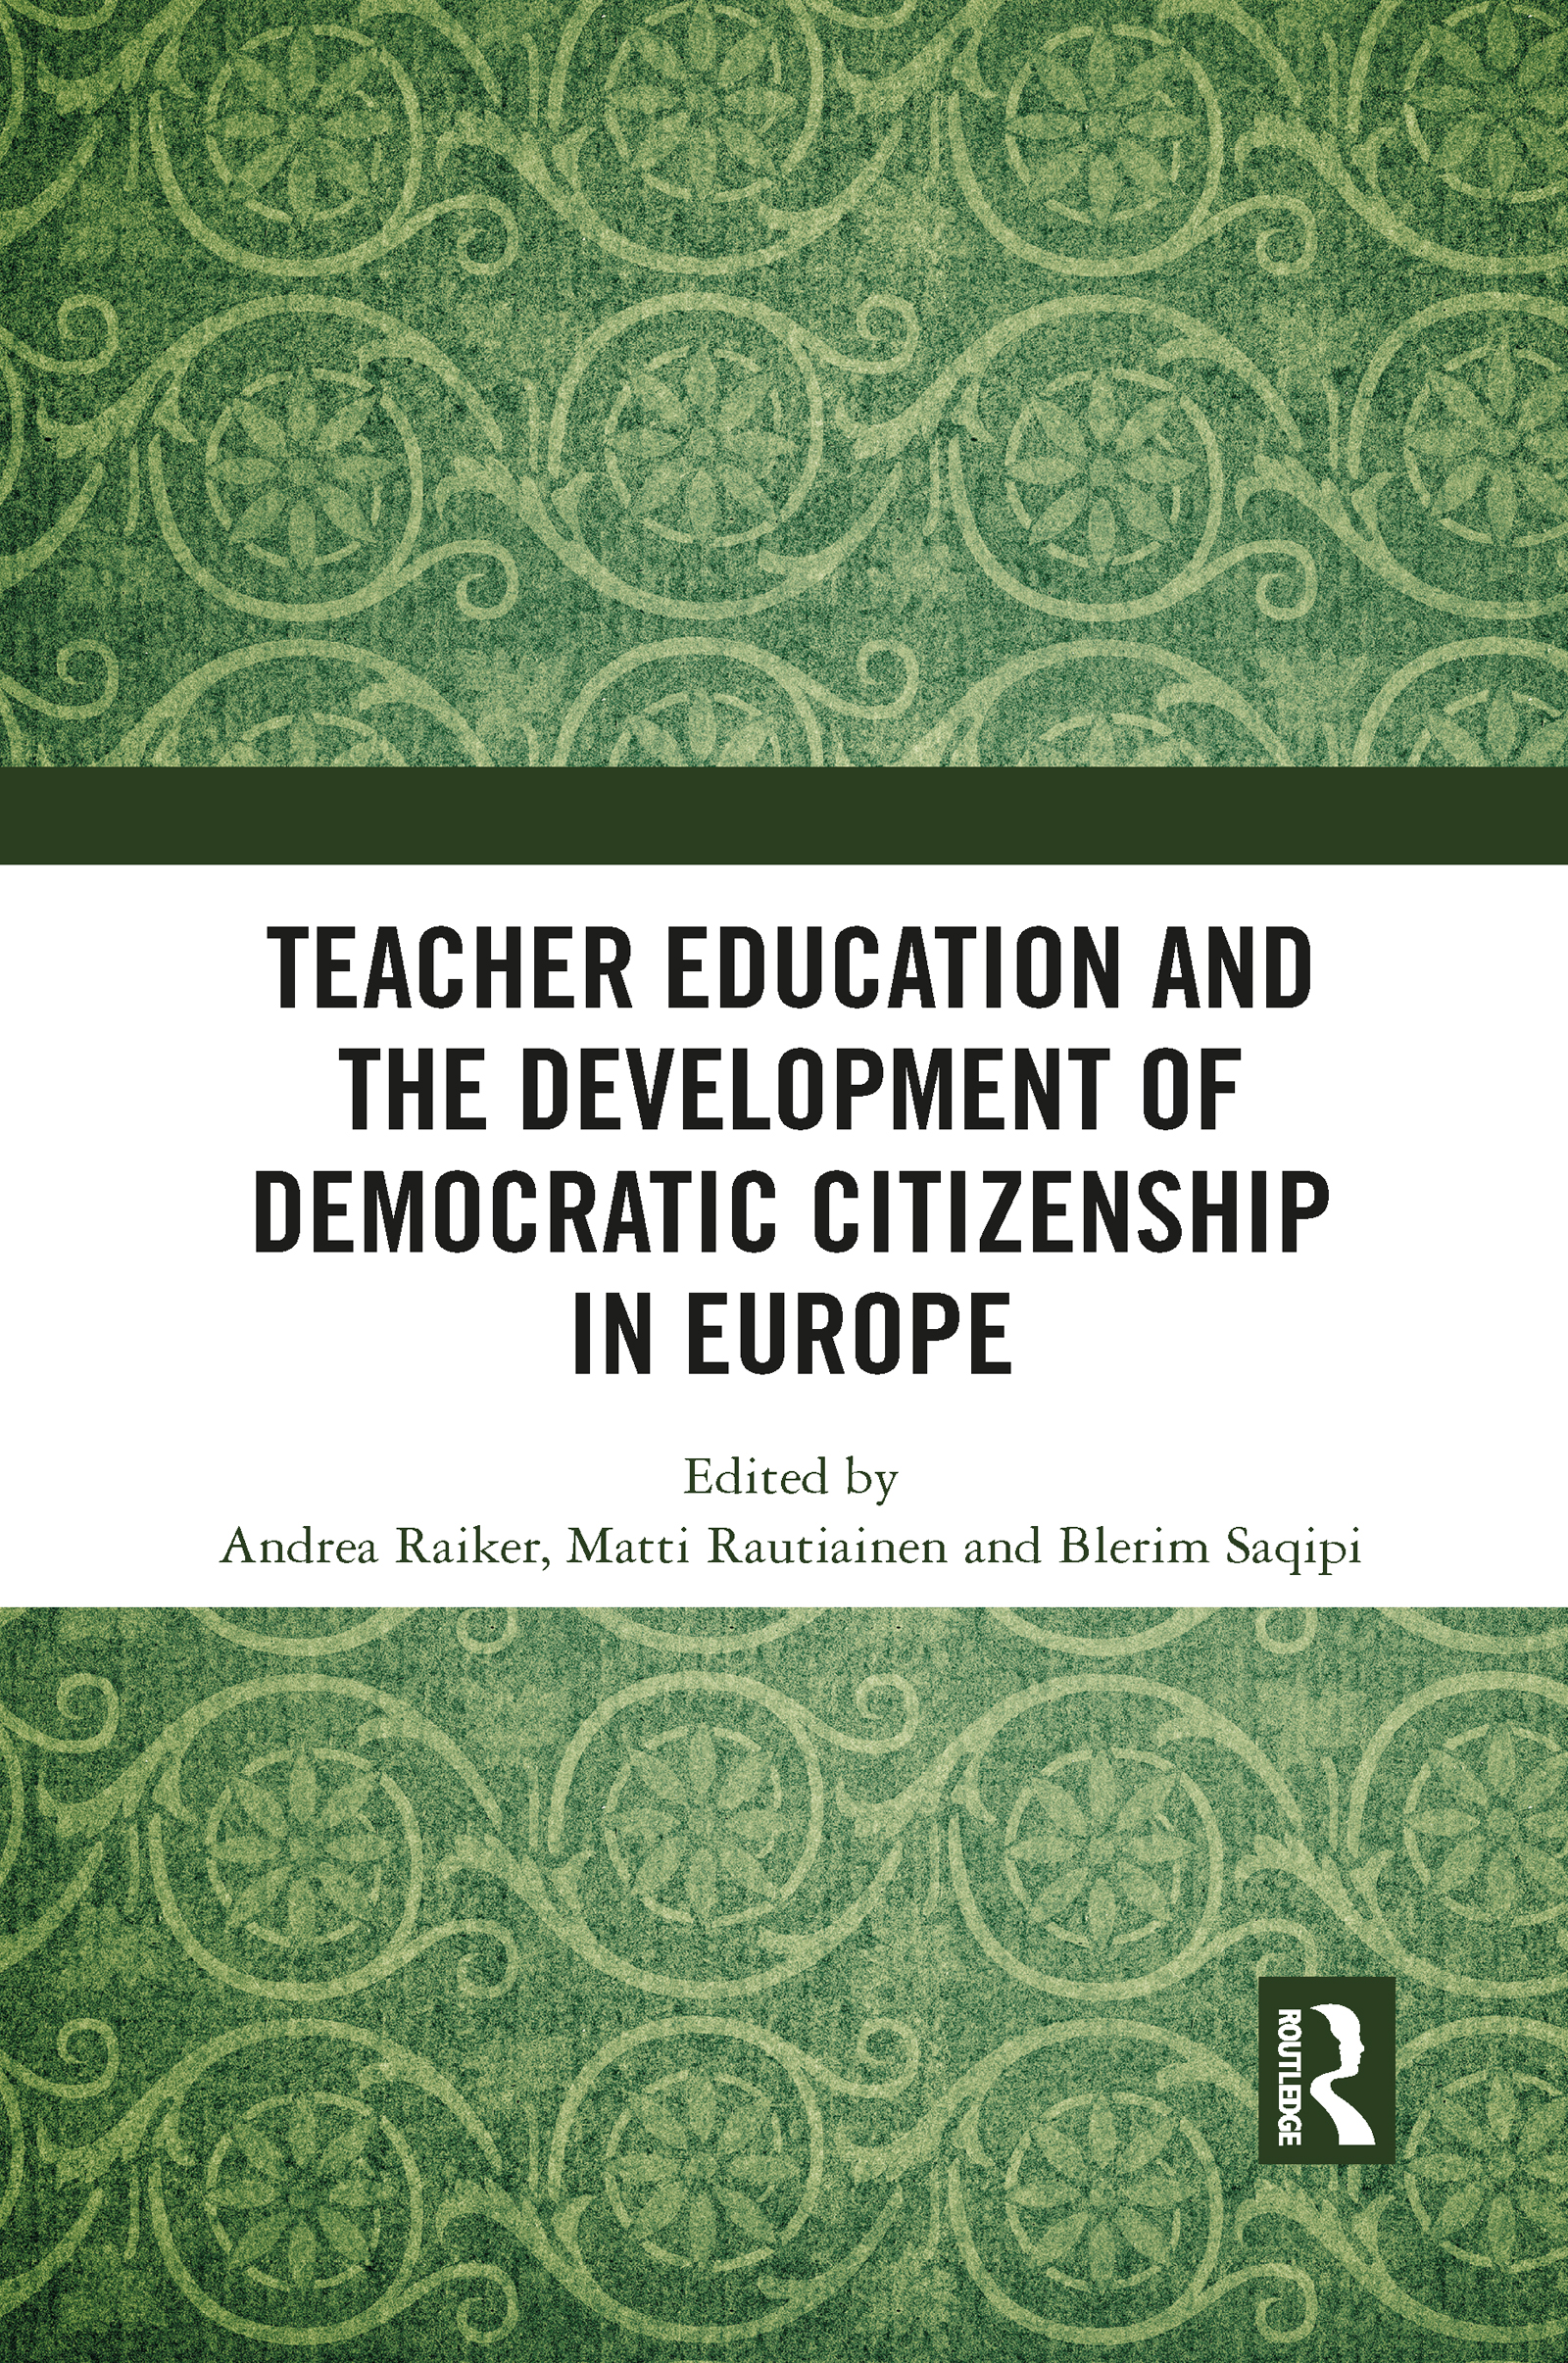 Teacher Education and the Development of Democratic Citizenship in Europe